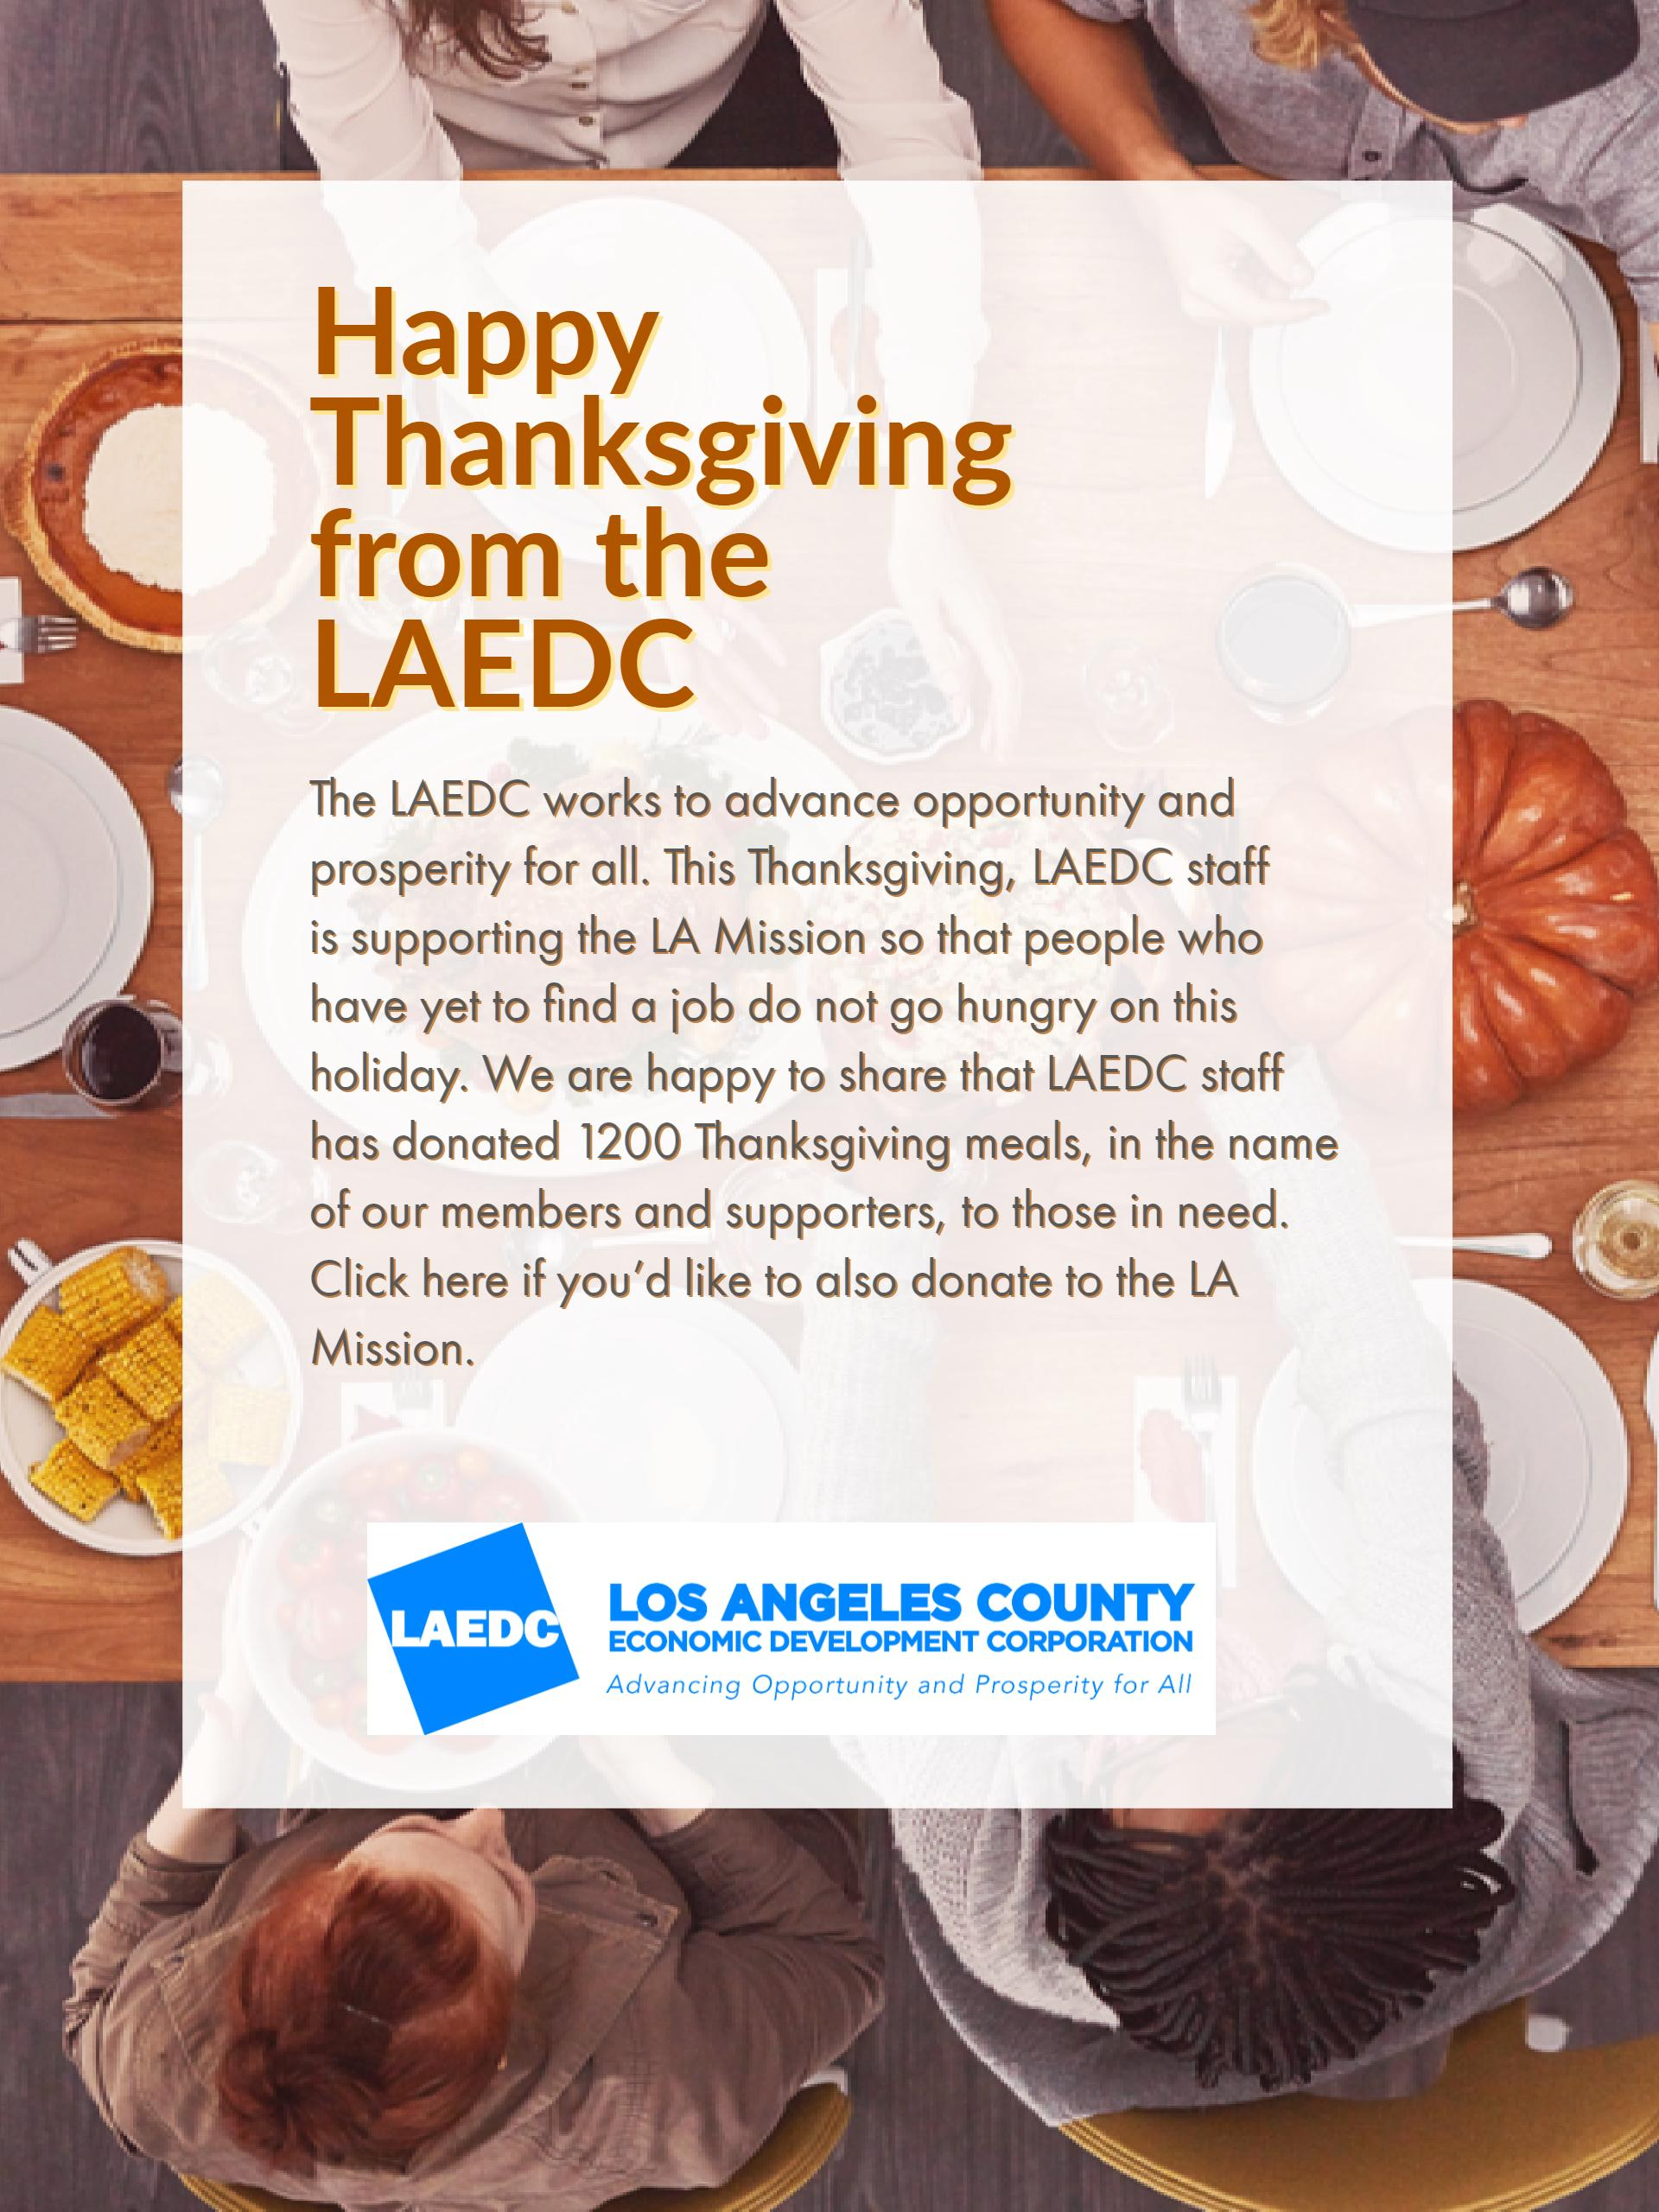 Laedc staff donates to la mission this thanksgiving los angeles laedc staff donates 1200 meals to la mission for the thanksgiving holiday in honor of our members and supporters forumfinder Choice Image